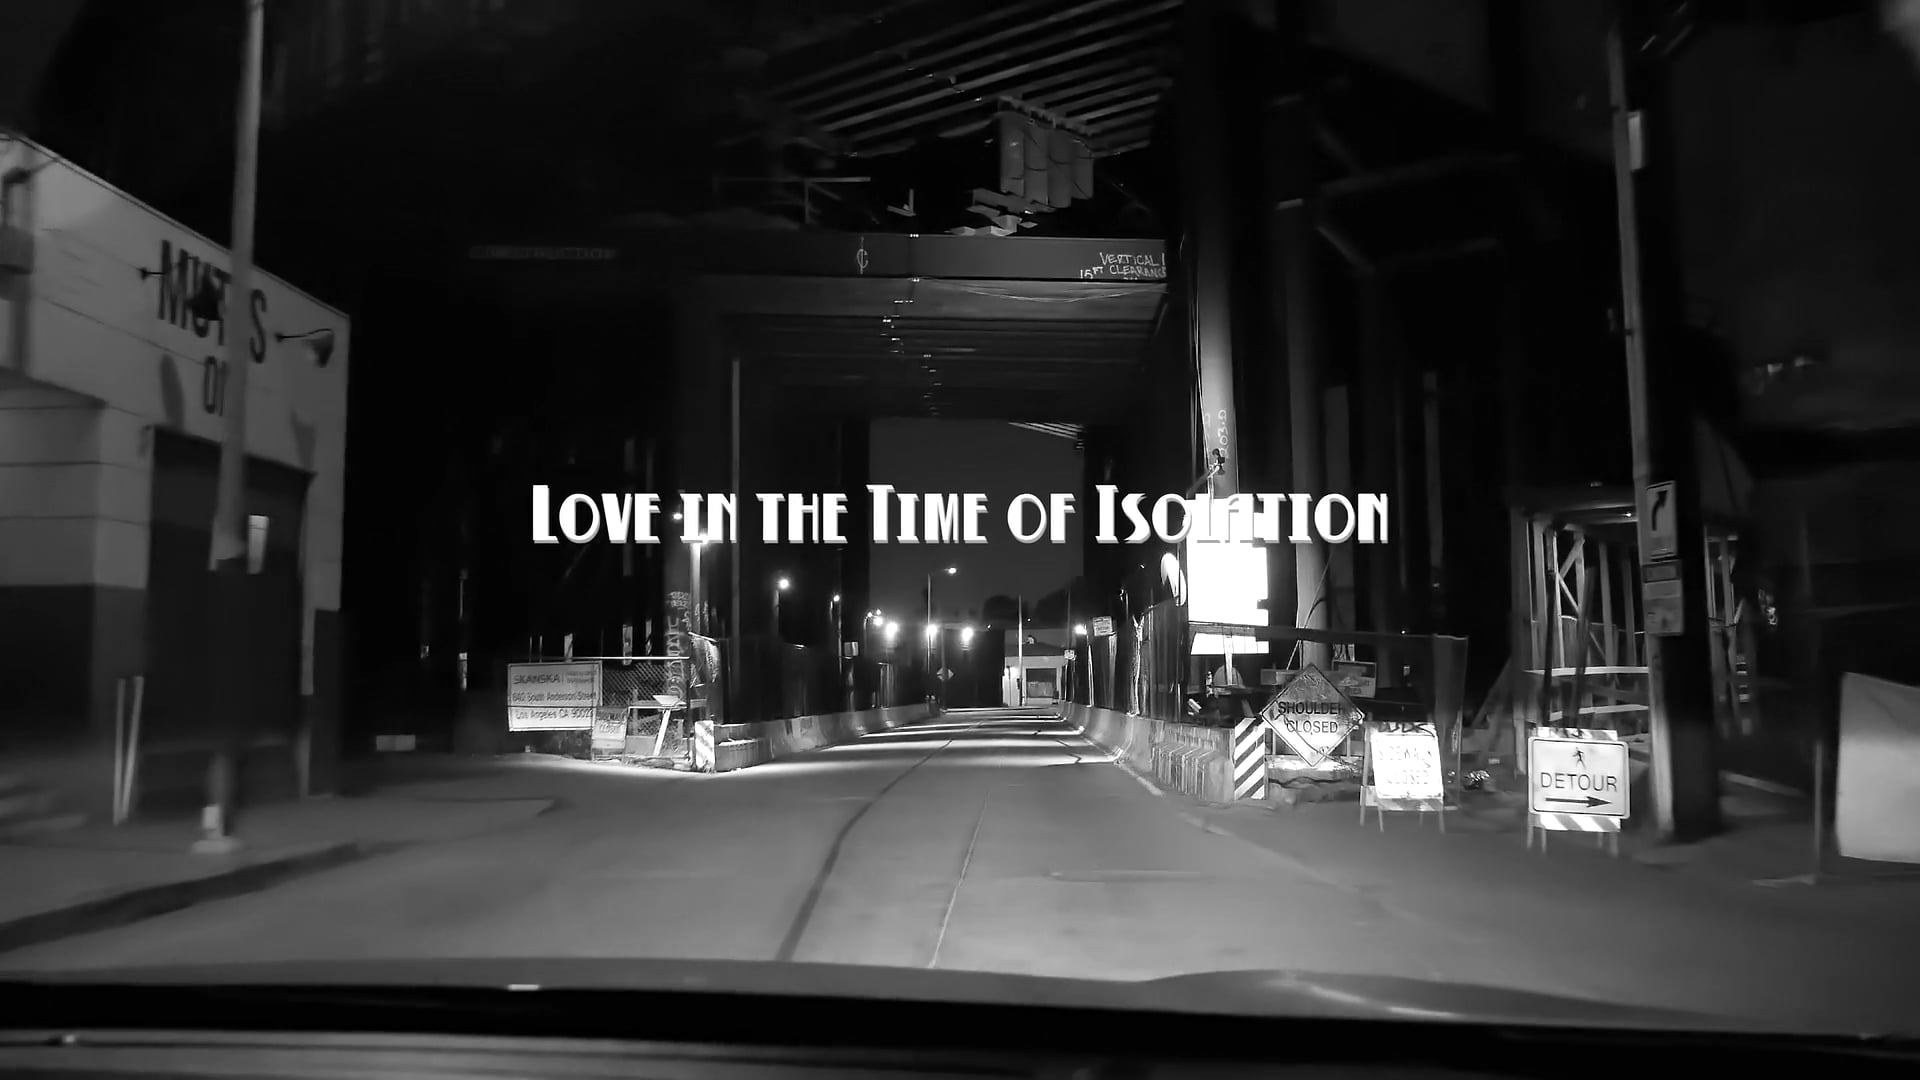 Love in the Time of Isolation